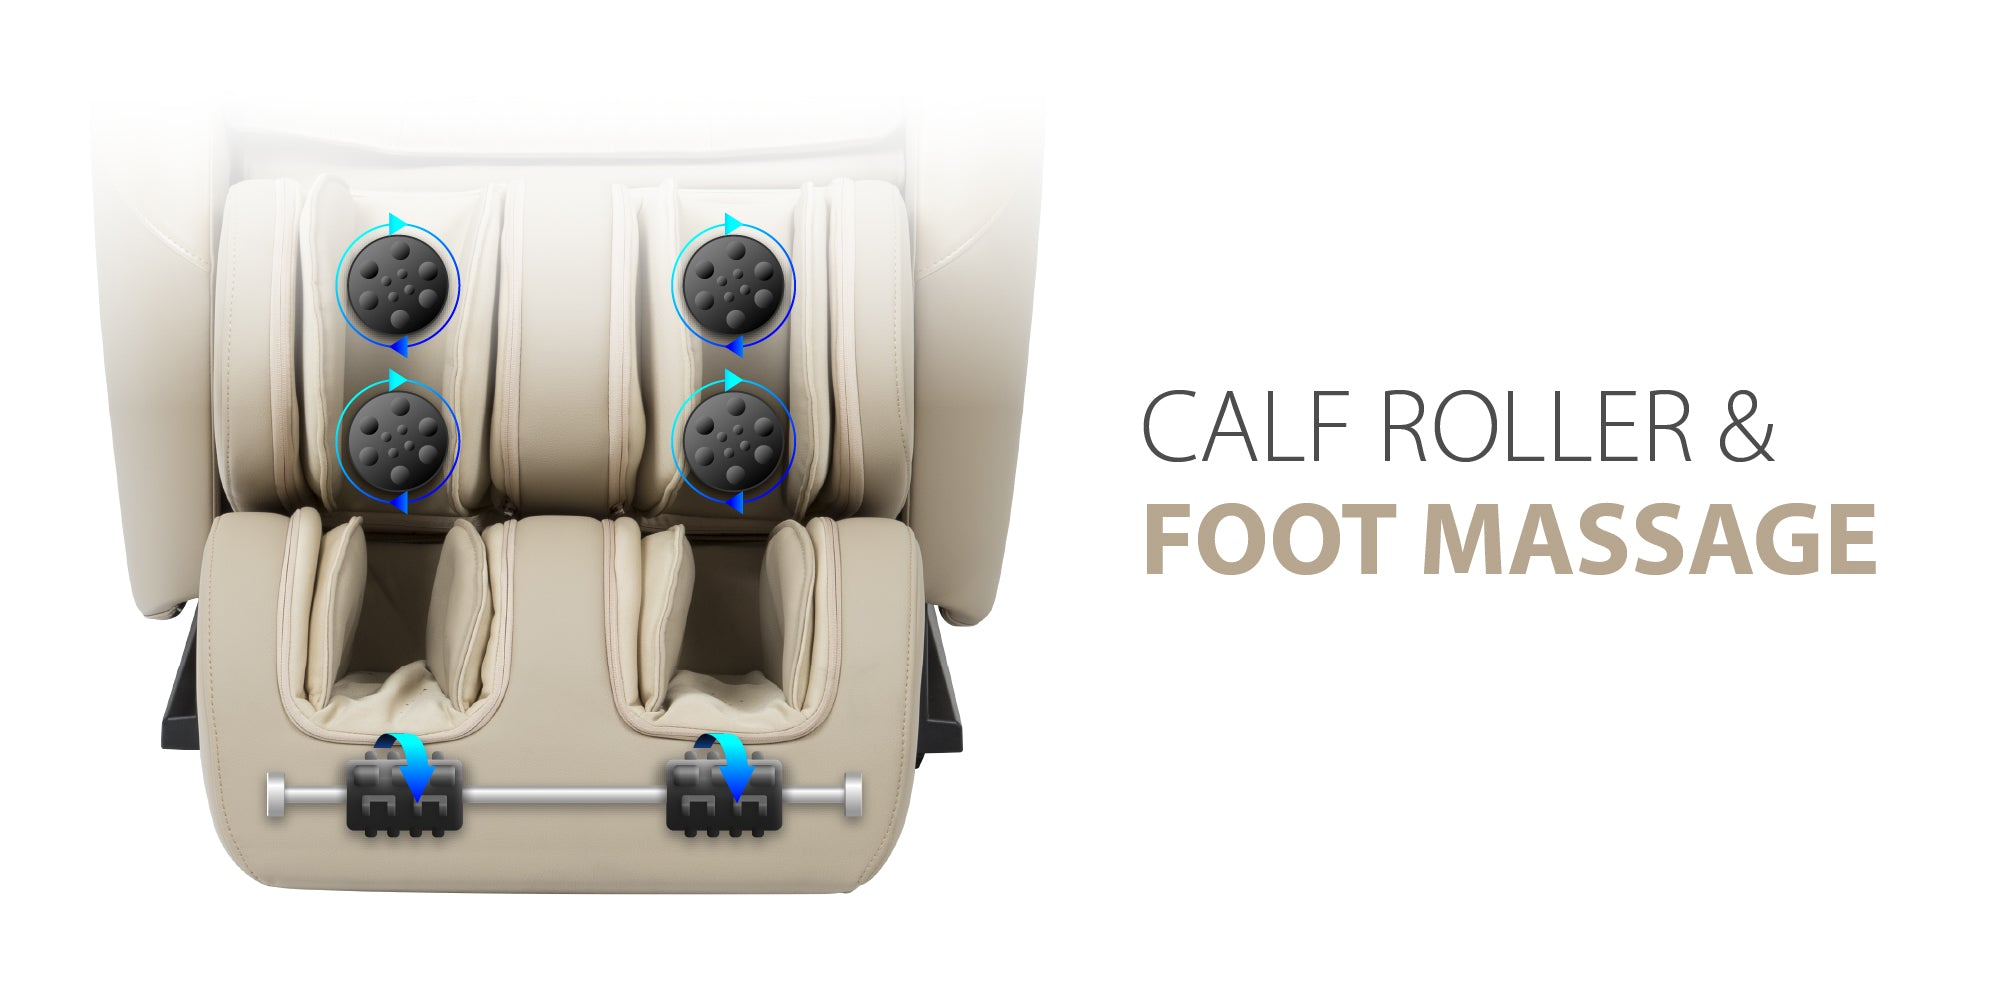 Calf Roller & Foot Massage